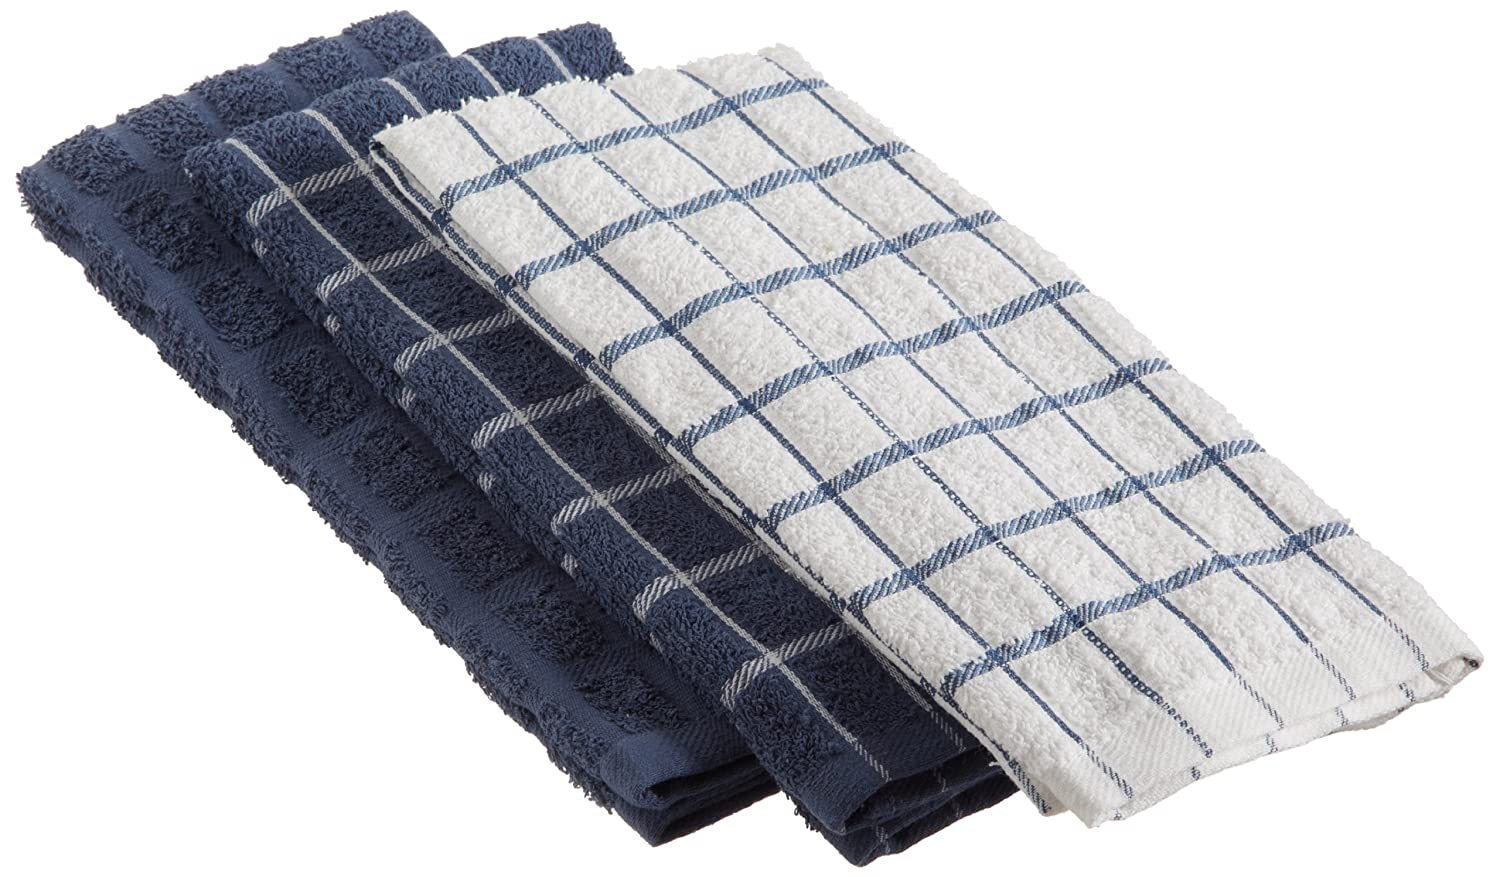 amazon com ritz 100 cotton terry kitchen dish towels highly rh amazon com terry cloth kitchen towels made in usa terry cloth kitchen towels with prints